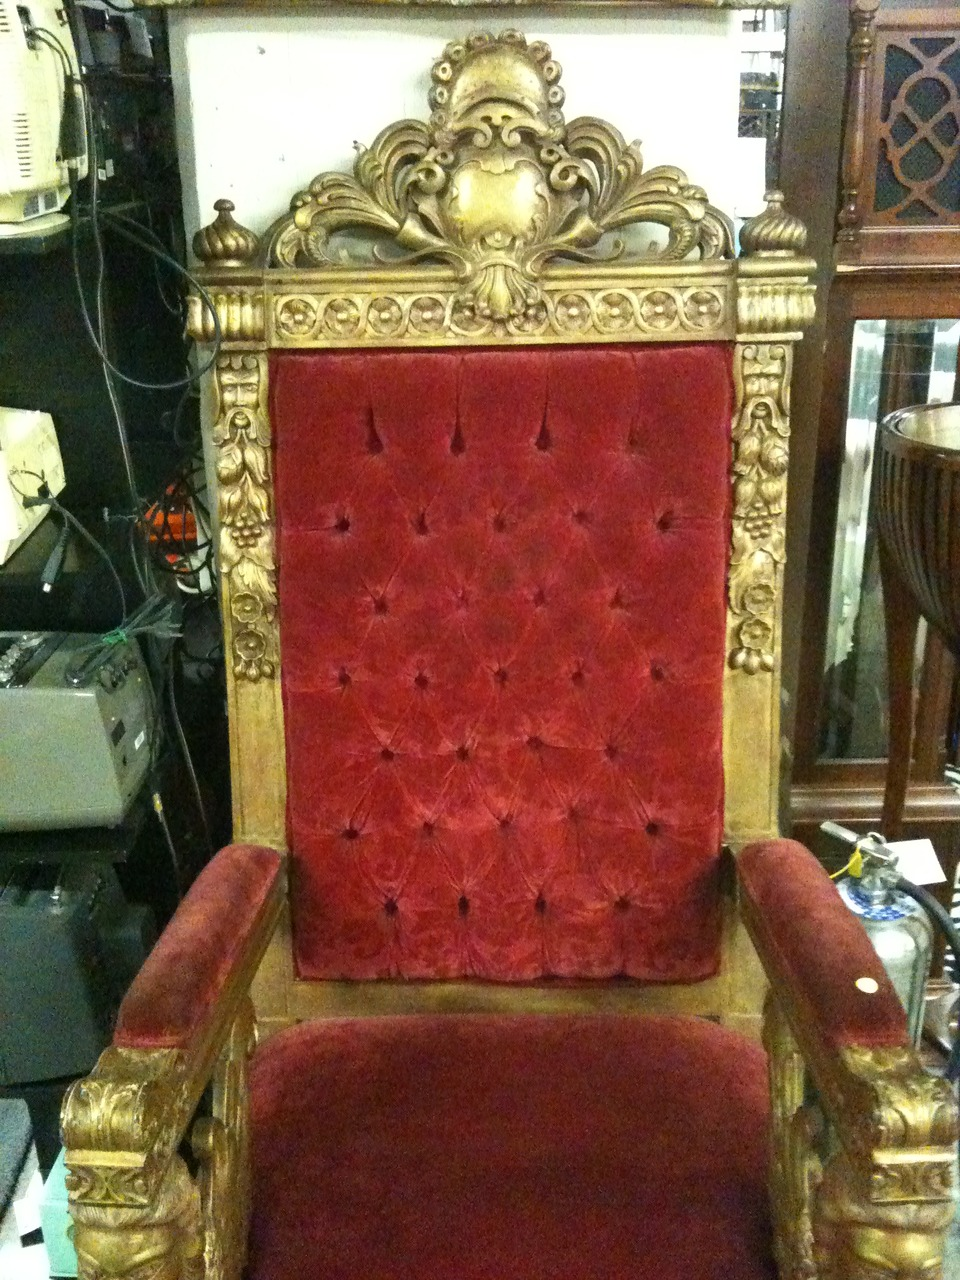 Went to a prop house today. Wondering if this was the chair biggie sat in